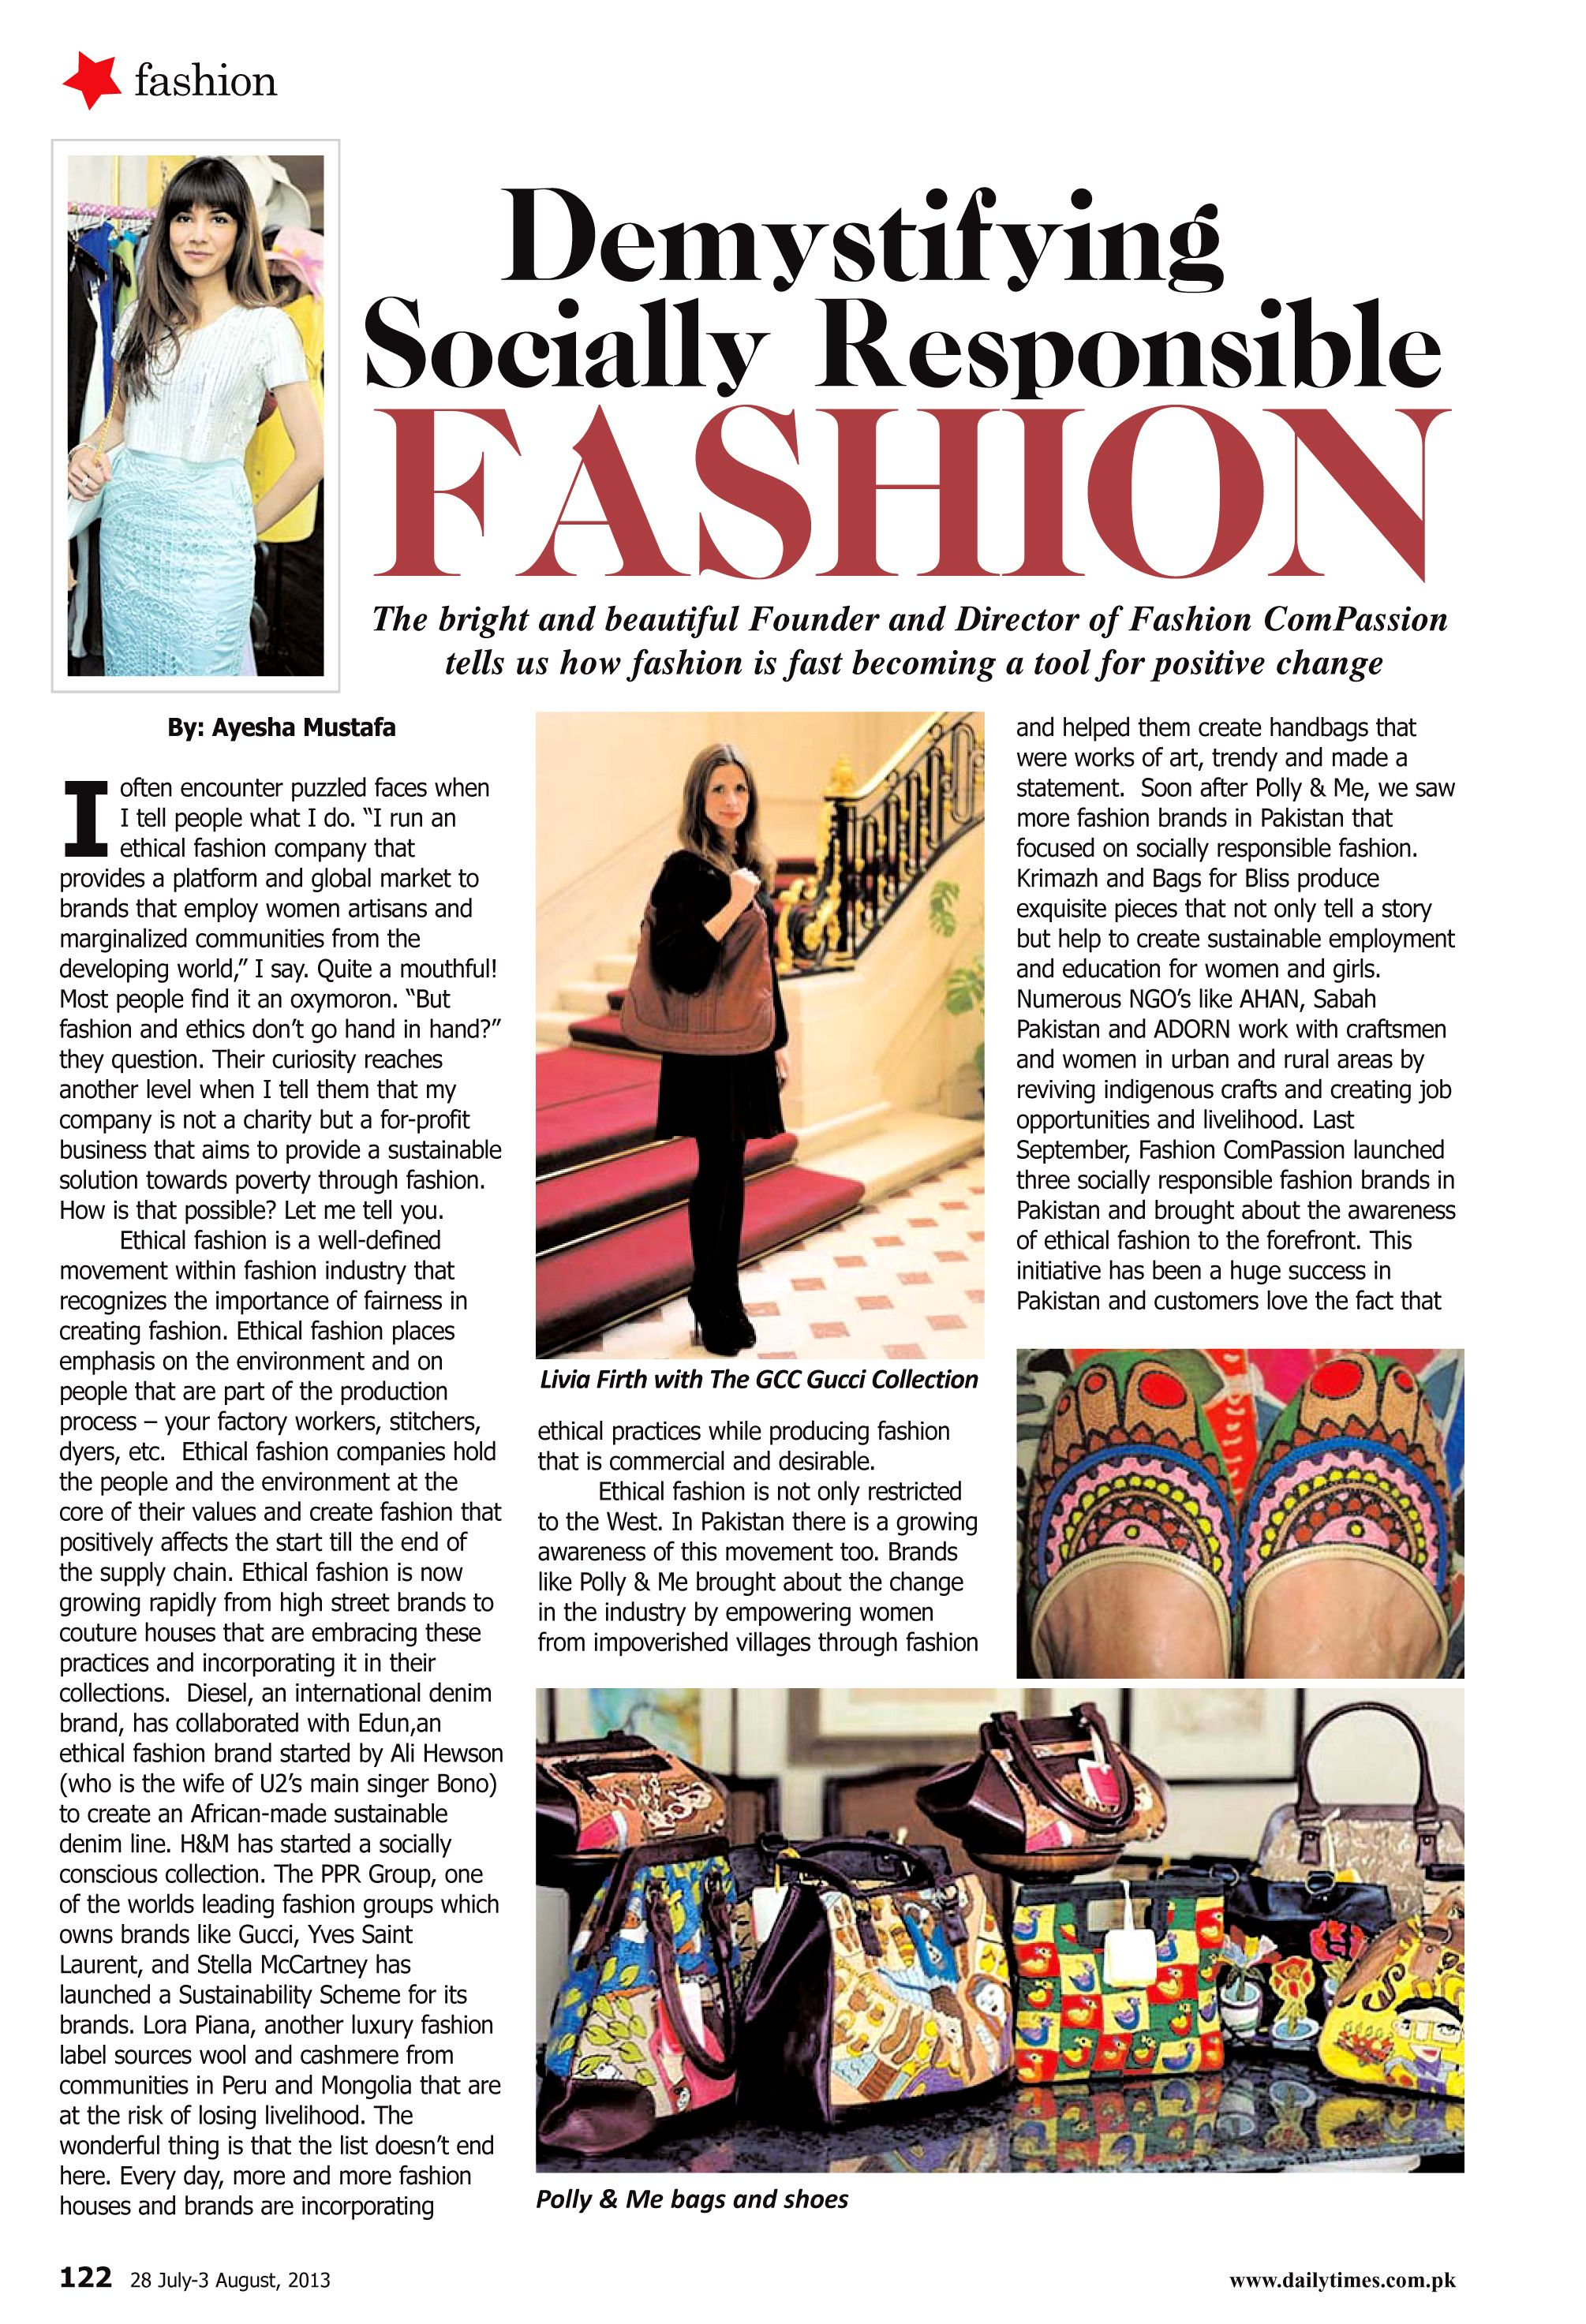 Fashion Compassion Article